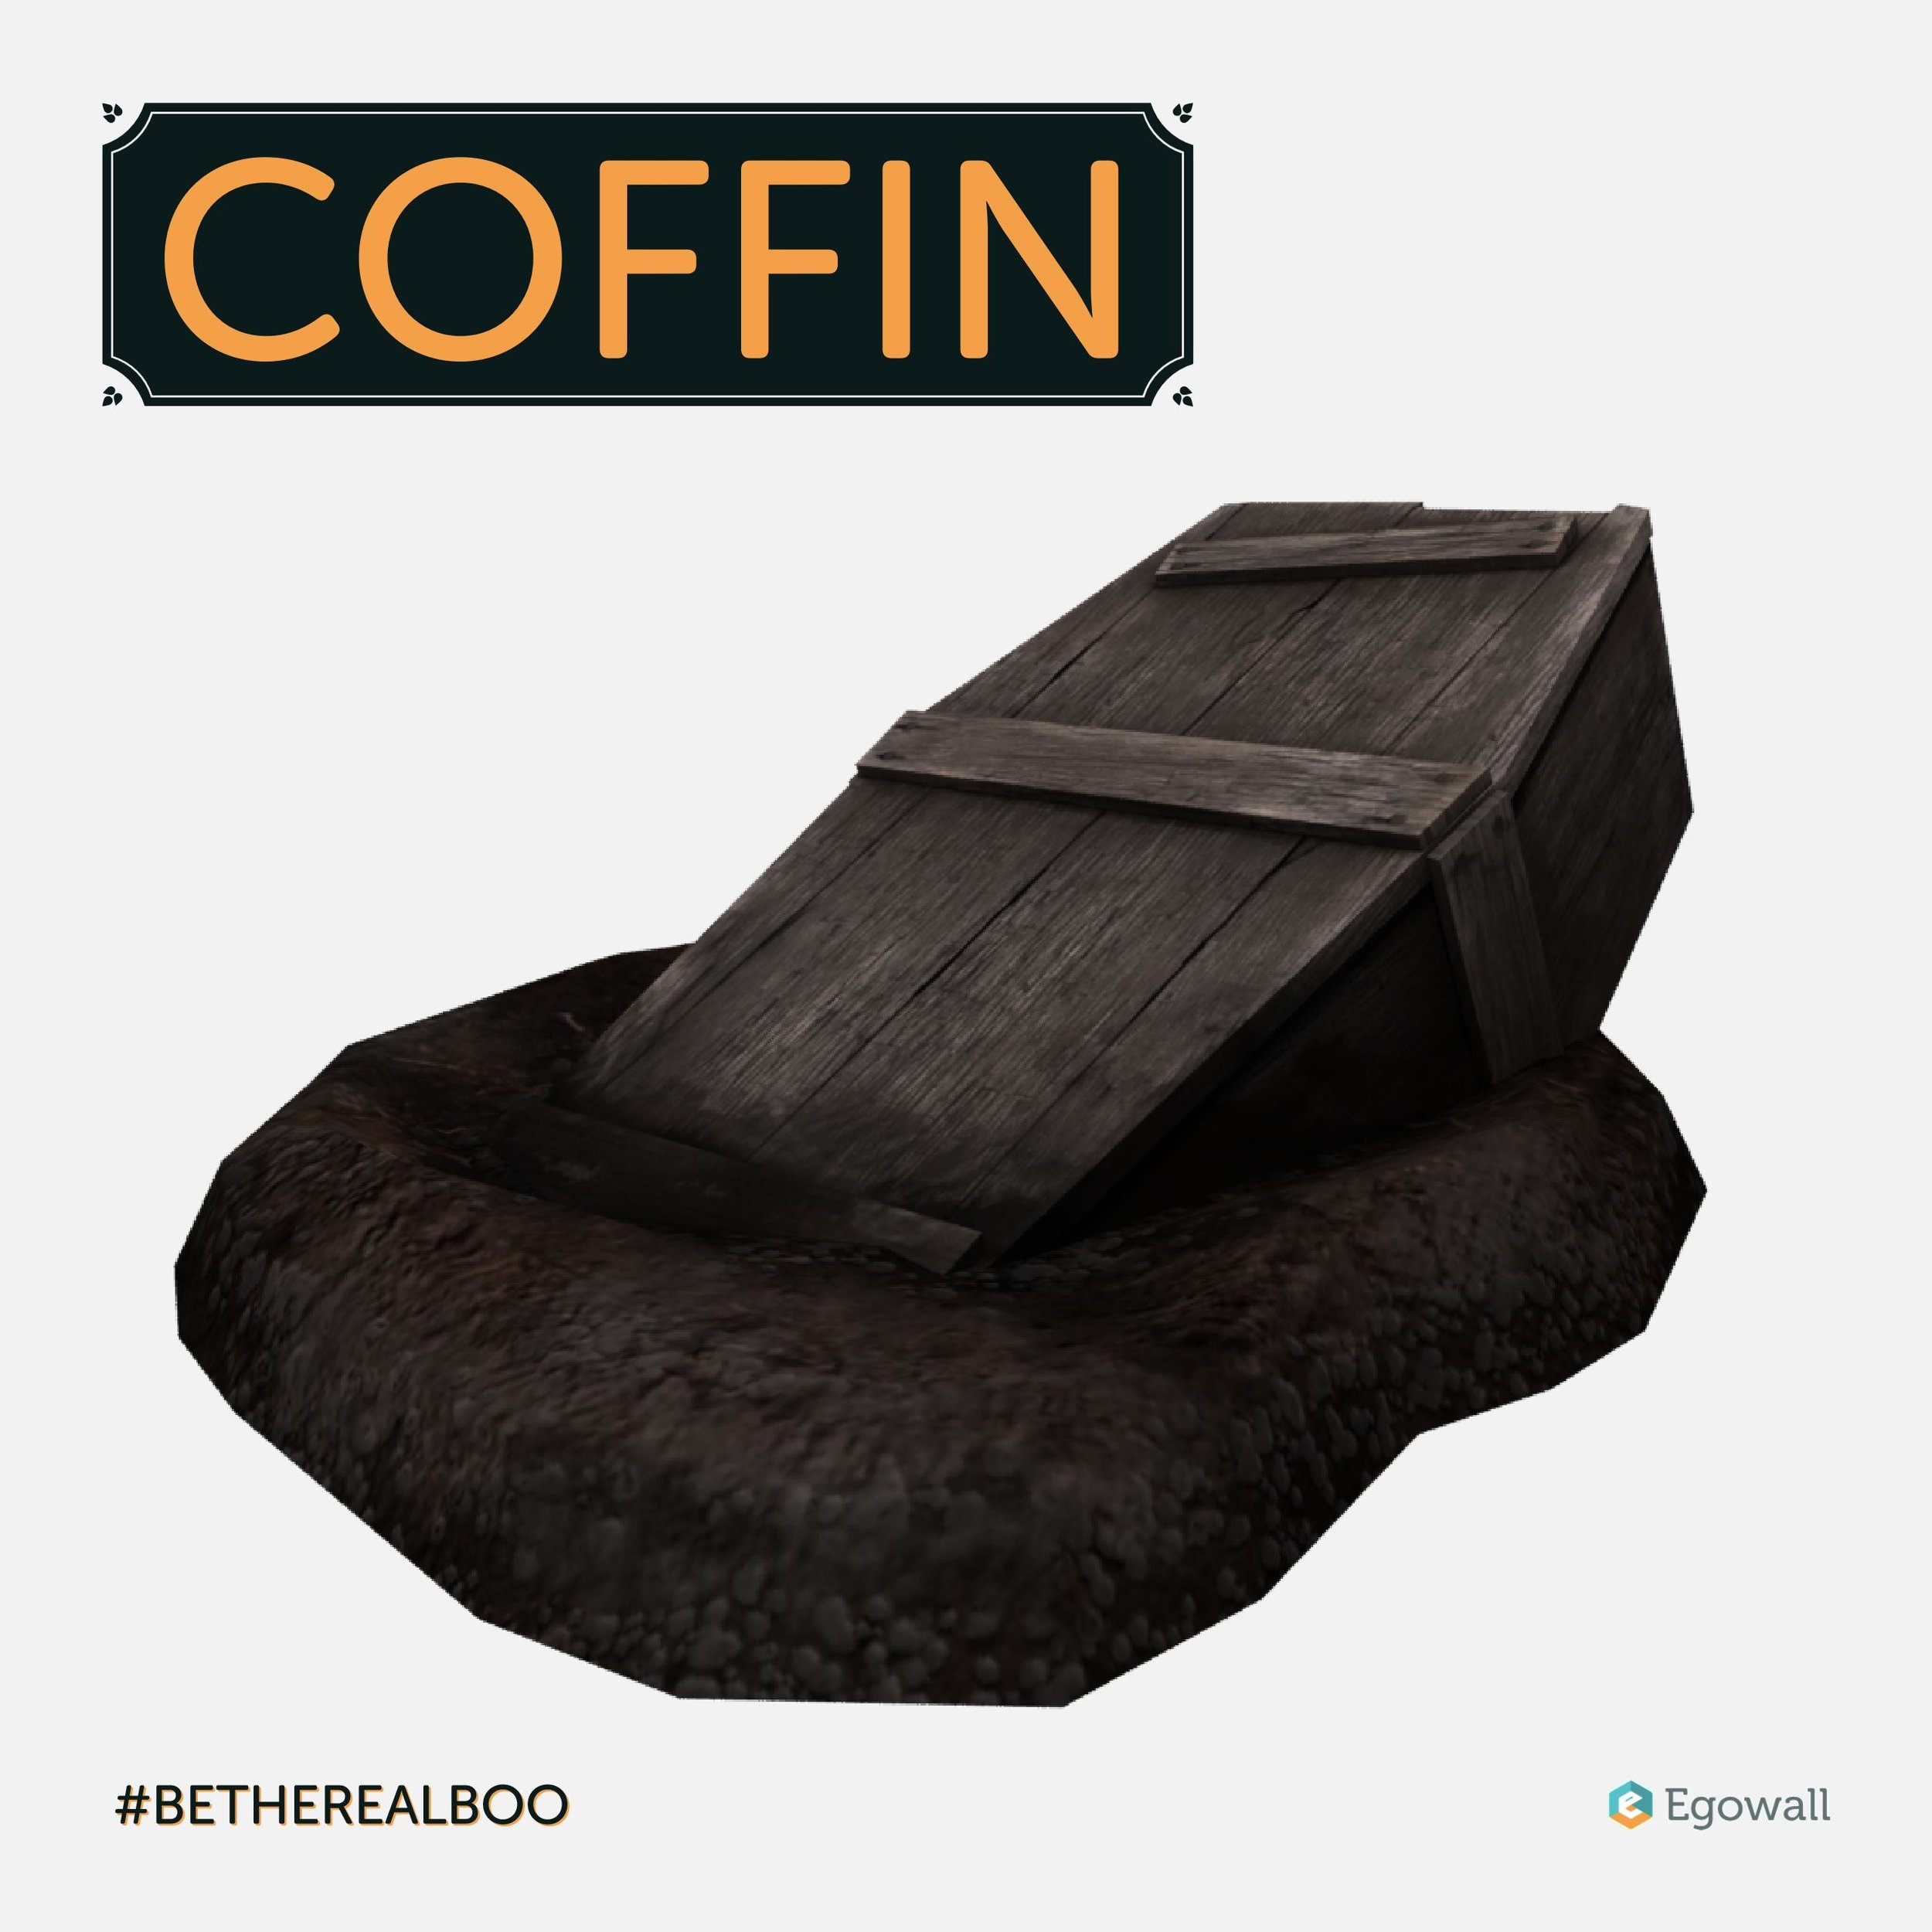 Coffin.Instagram.jpg